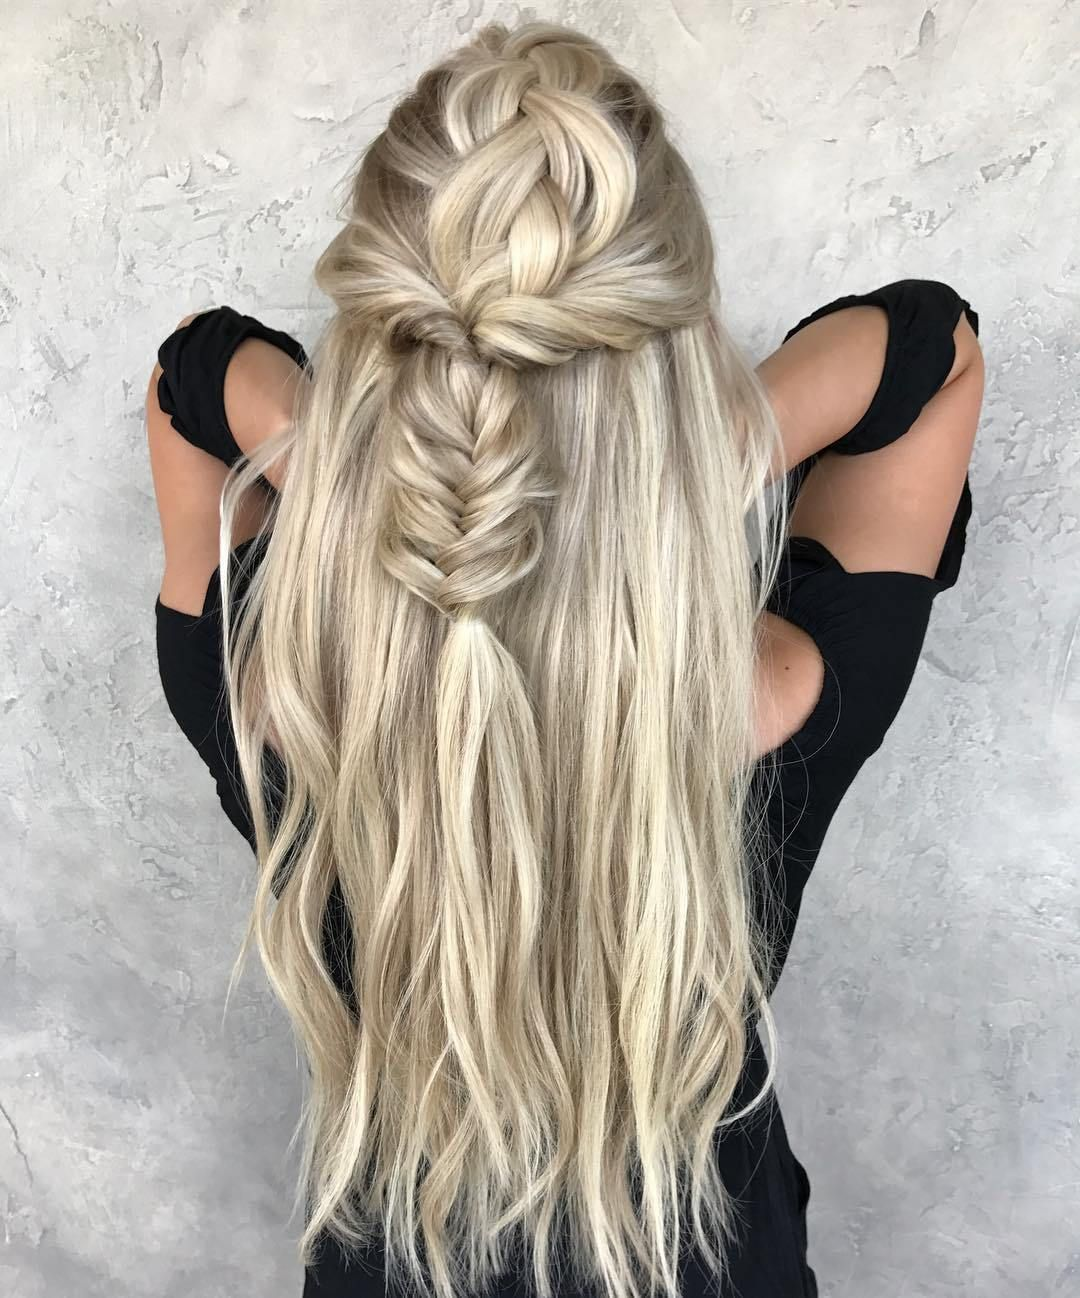 49 Boho Braid Hairstyles To Try 1 Top Ideas To Try Recipes